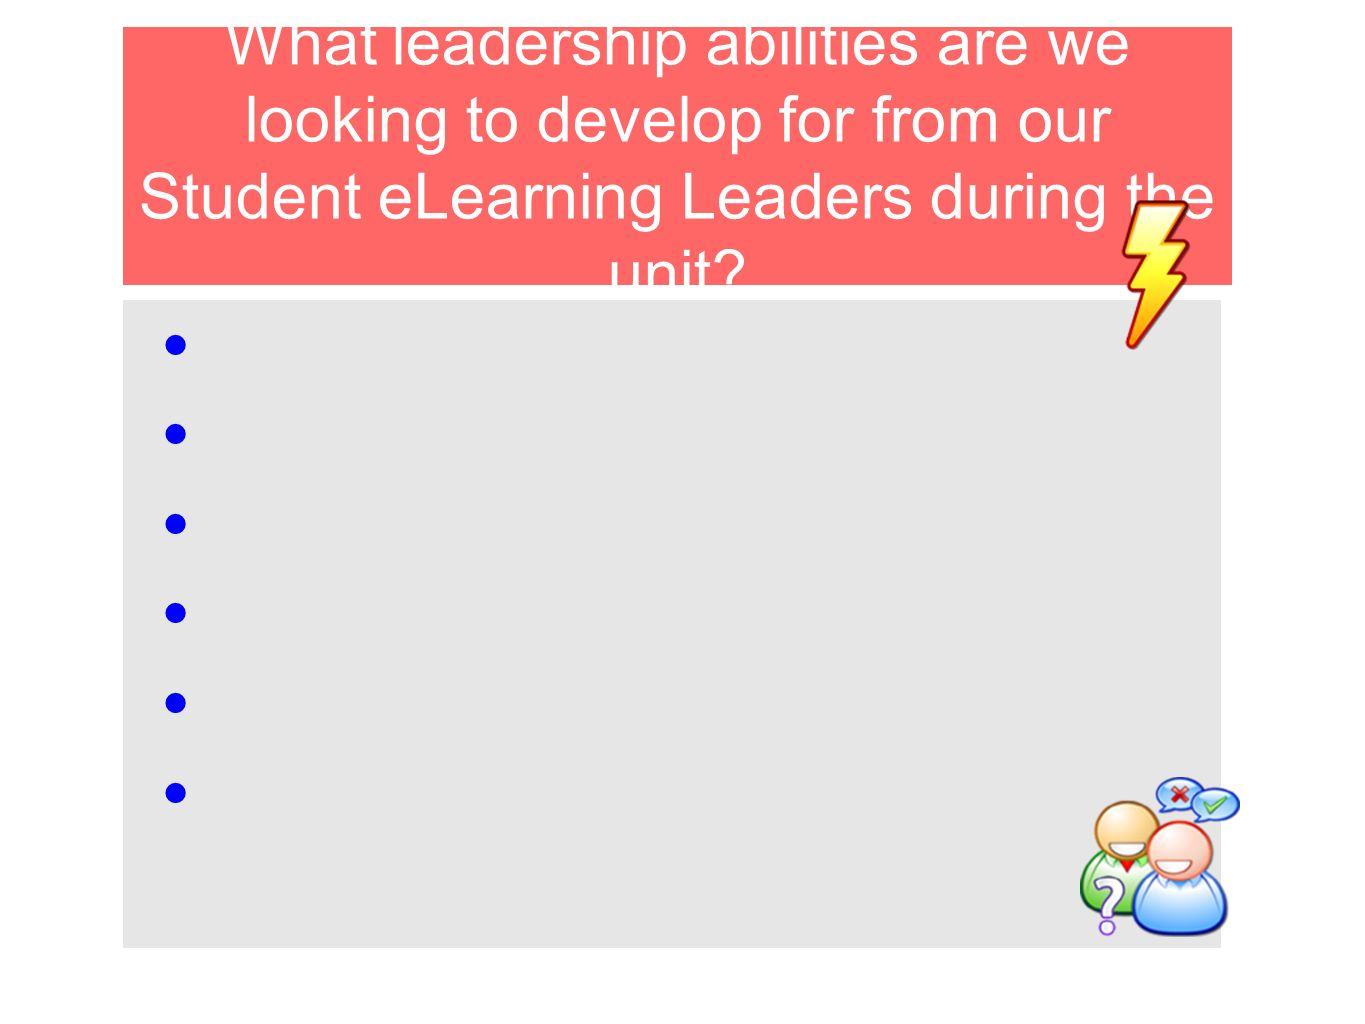 What leadership abilities are we looking to develop for from our Student eLearning Leaders during the unit?